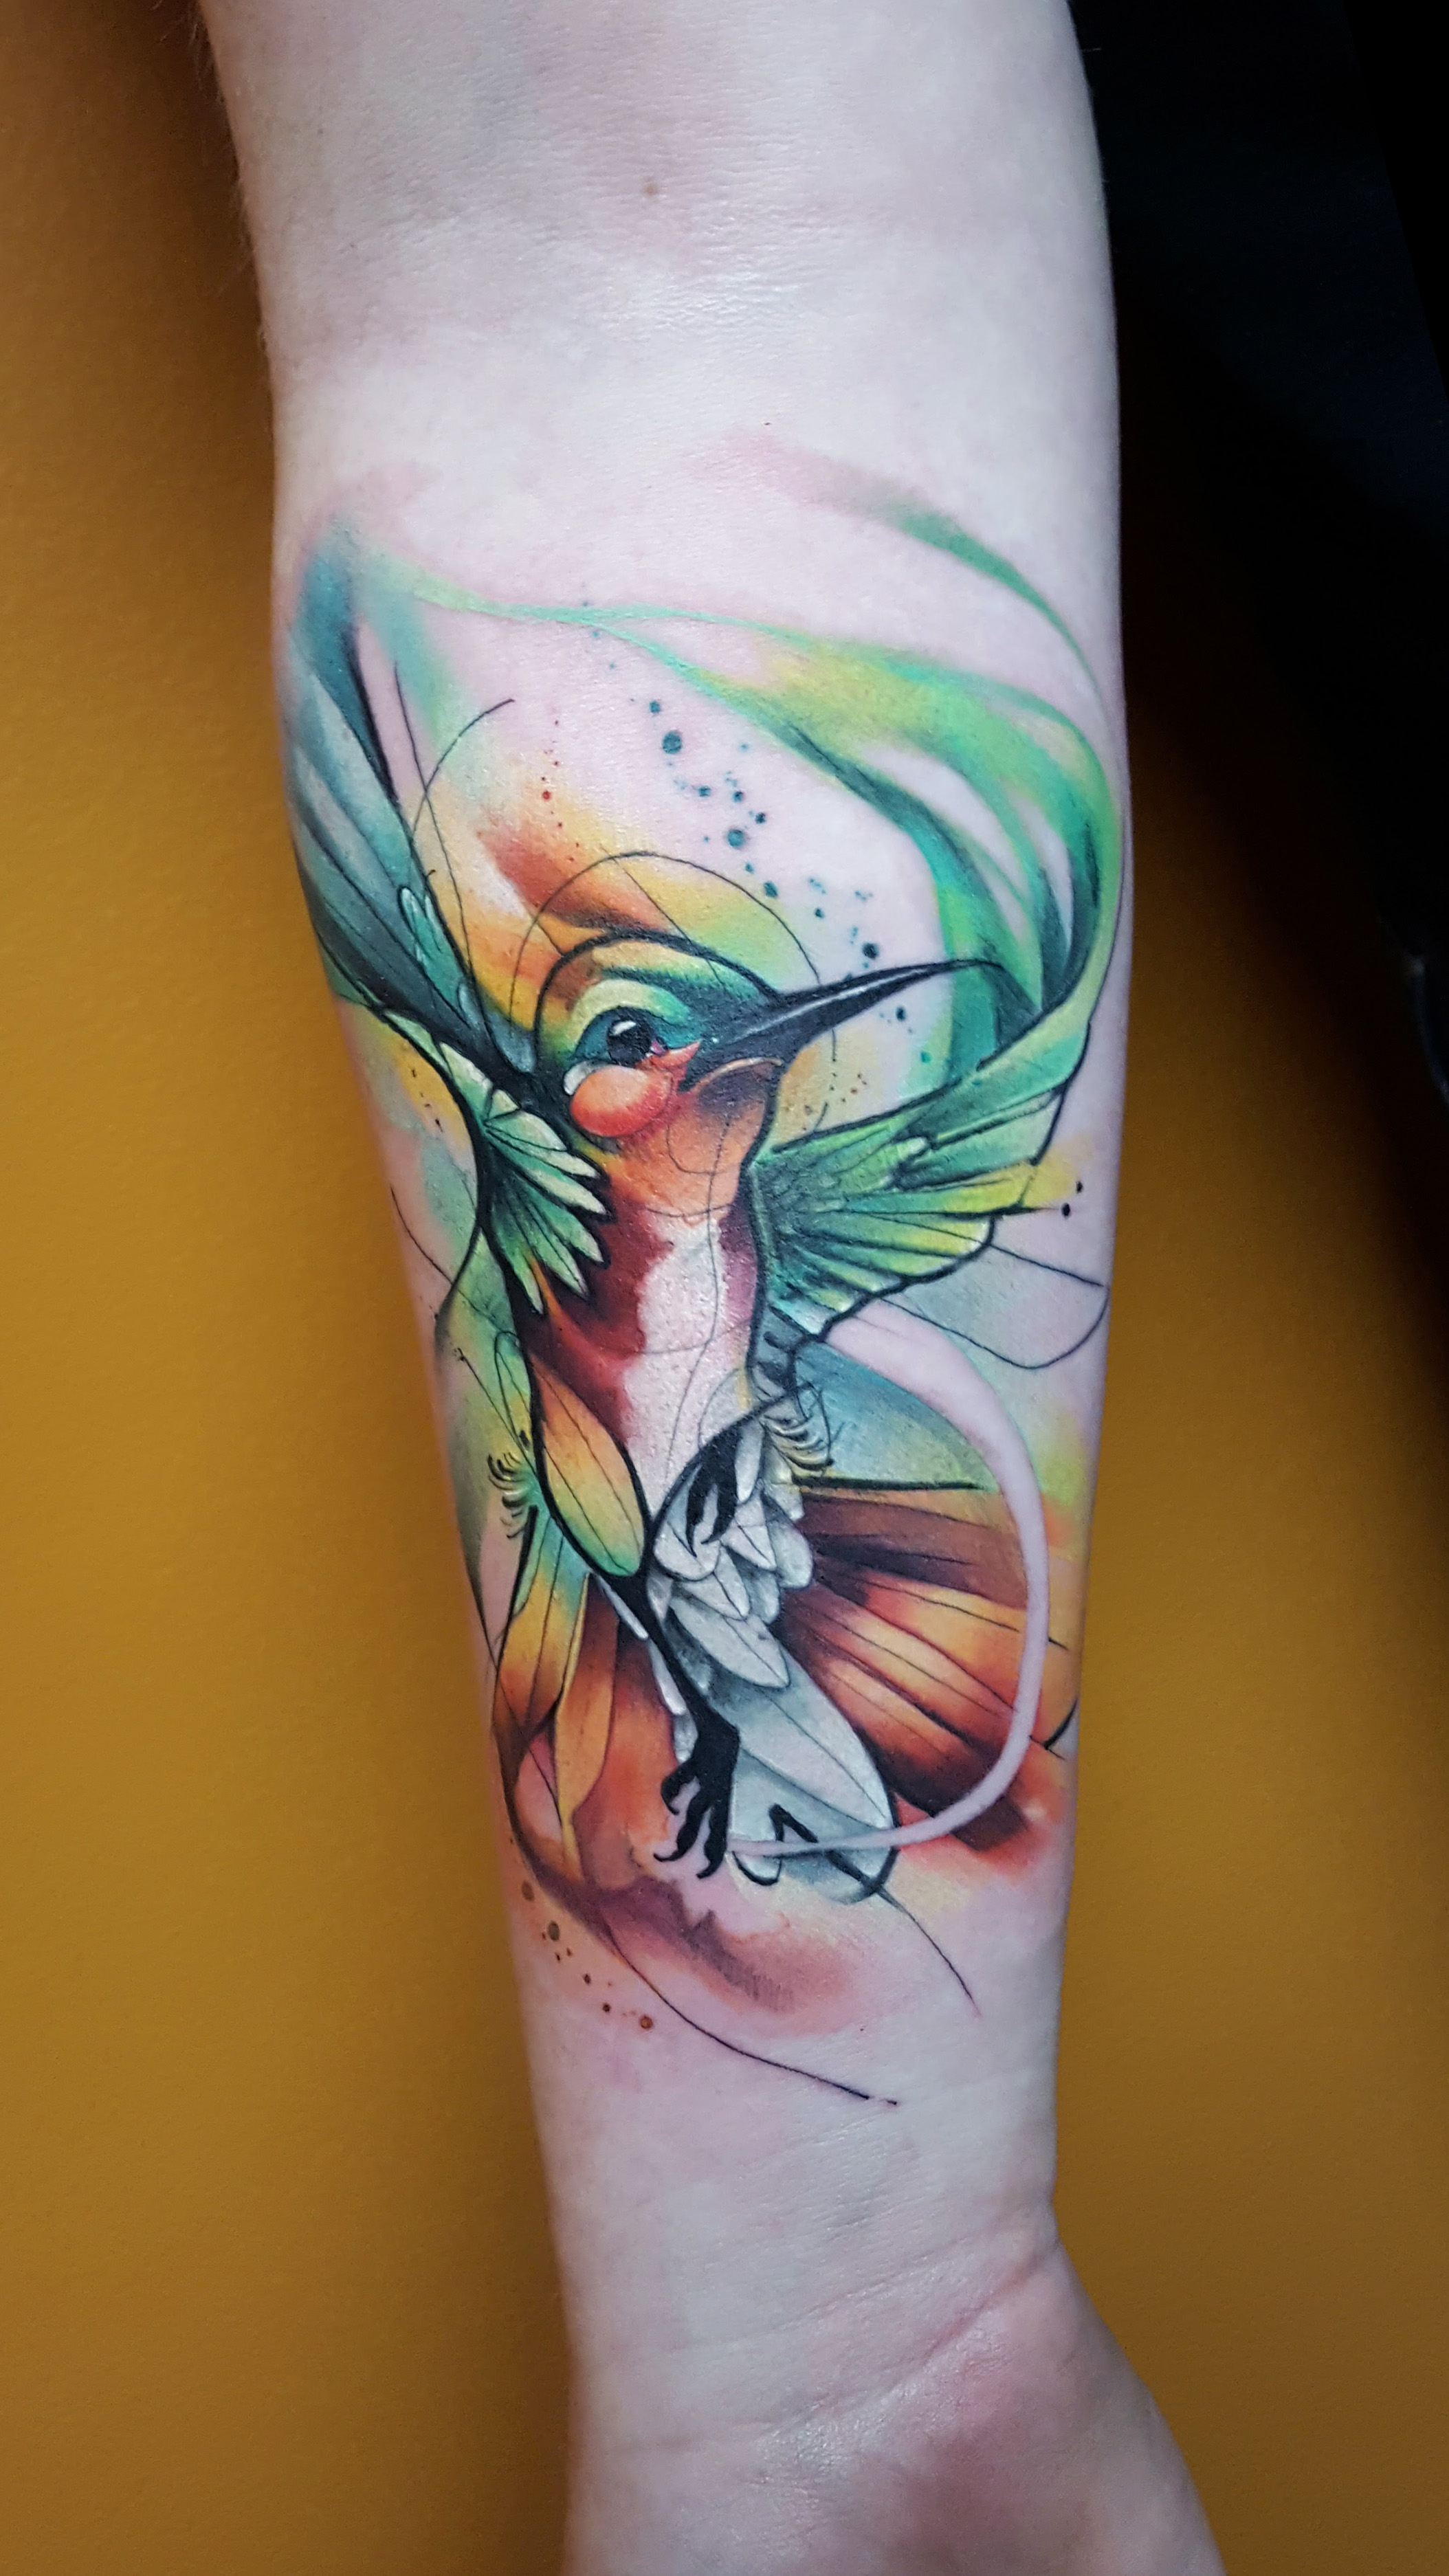 Watercolor Tattoo Hummingbird Forearm.jpg